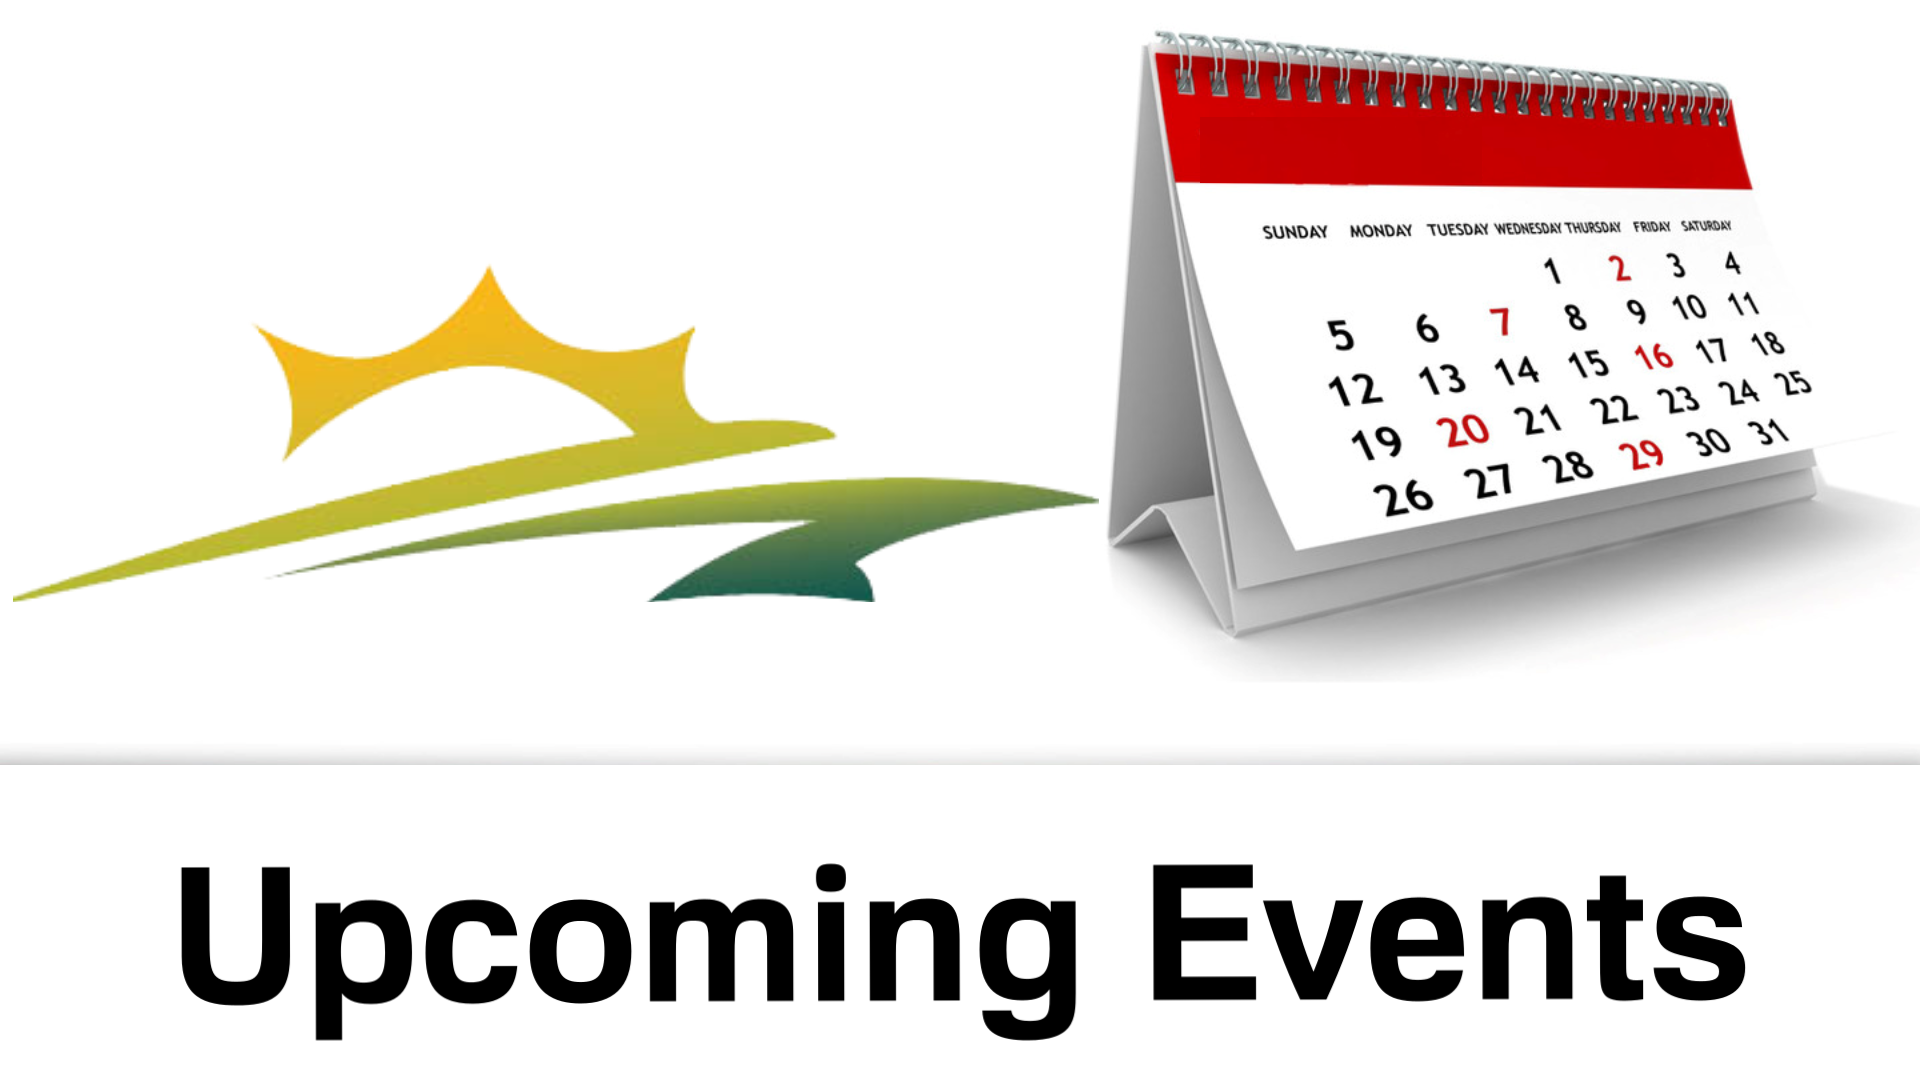 Upcoming Events Web 2